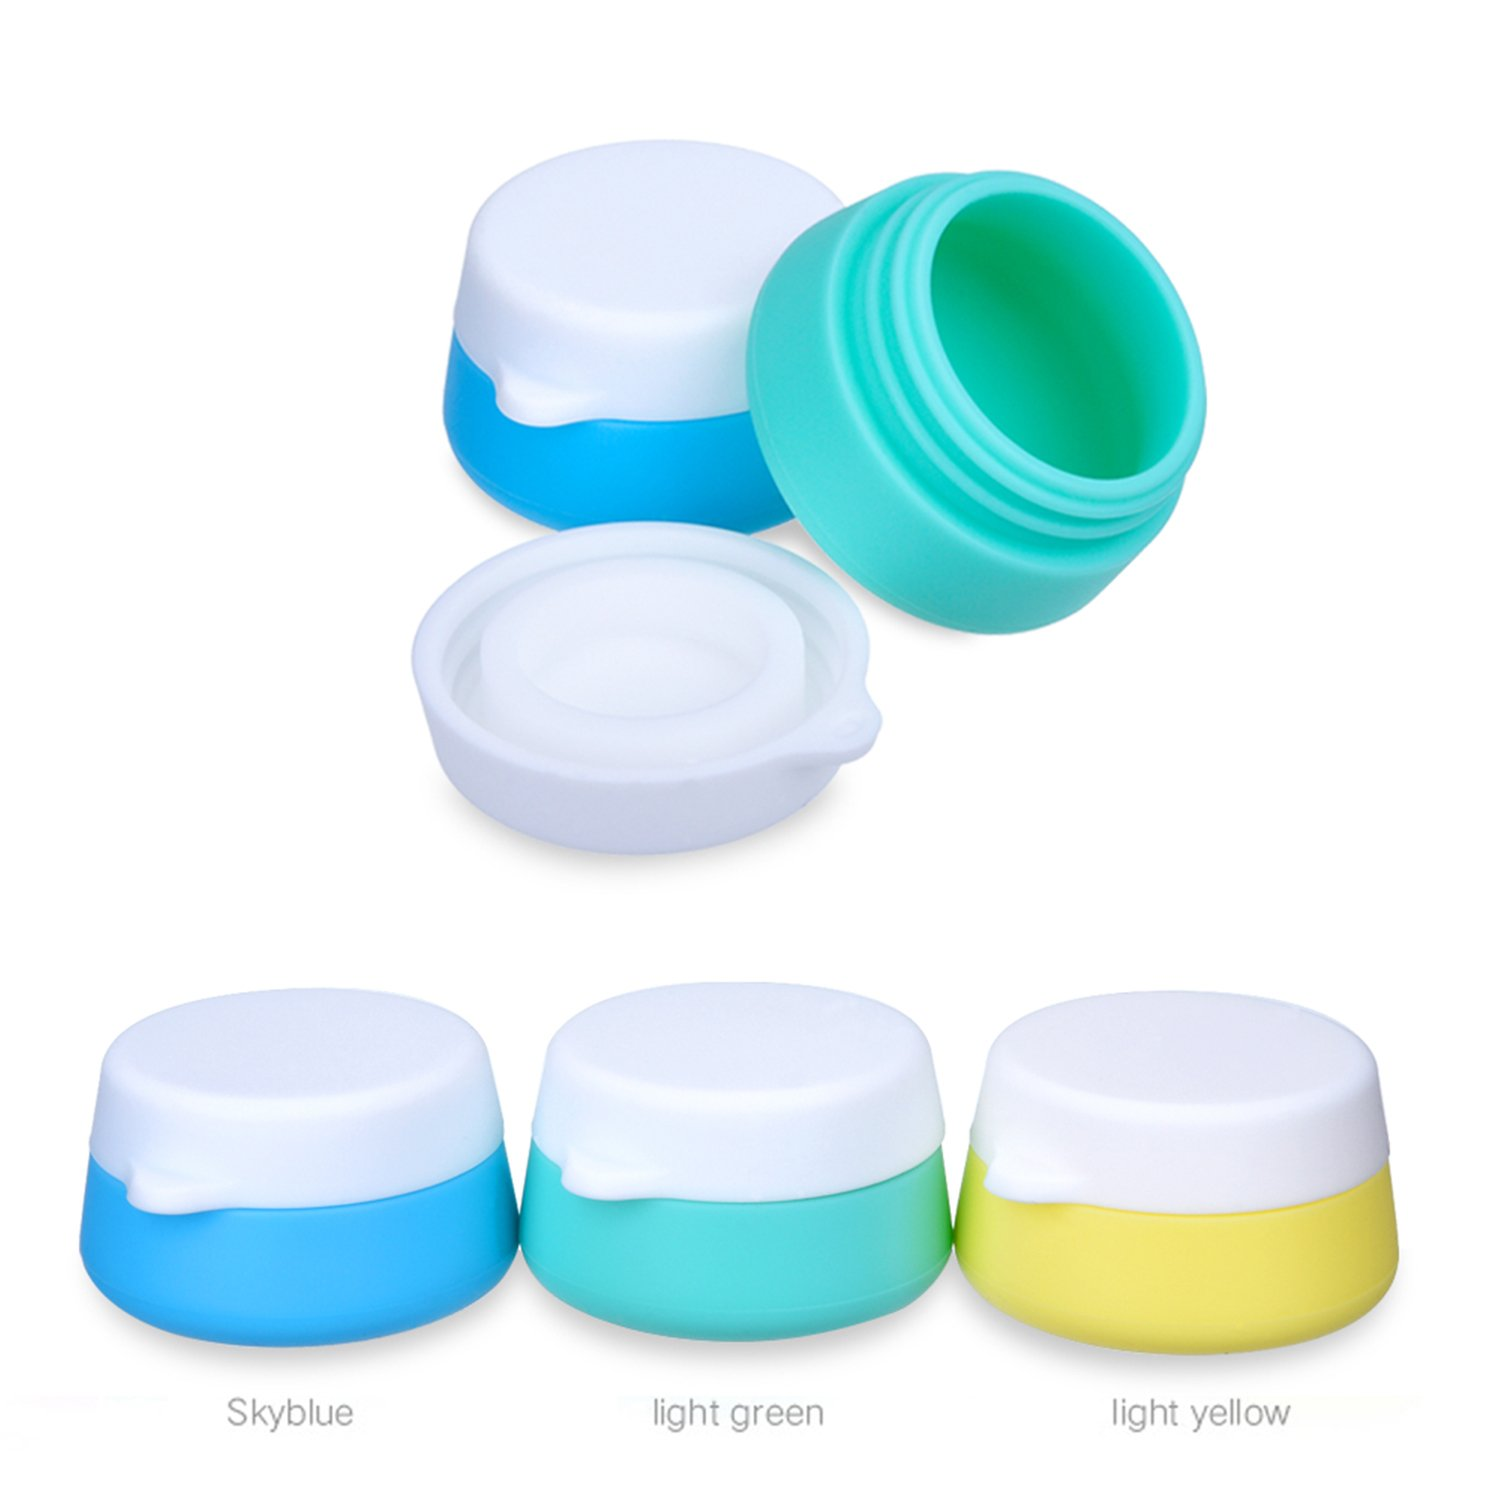 Amazon.com : Mudder Silicone Cosmetic Containers Cream Jar with ...